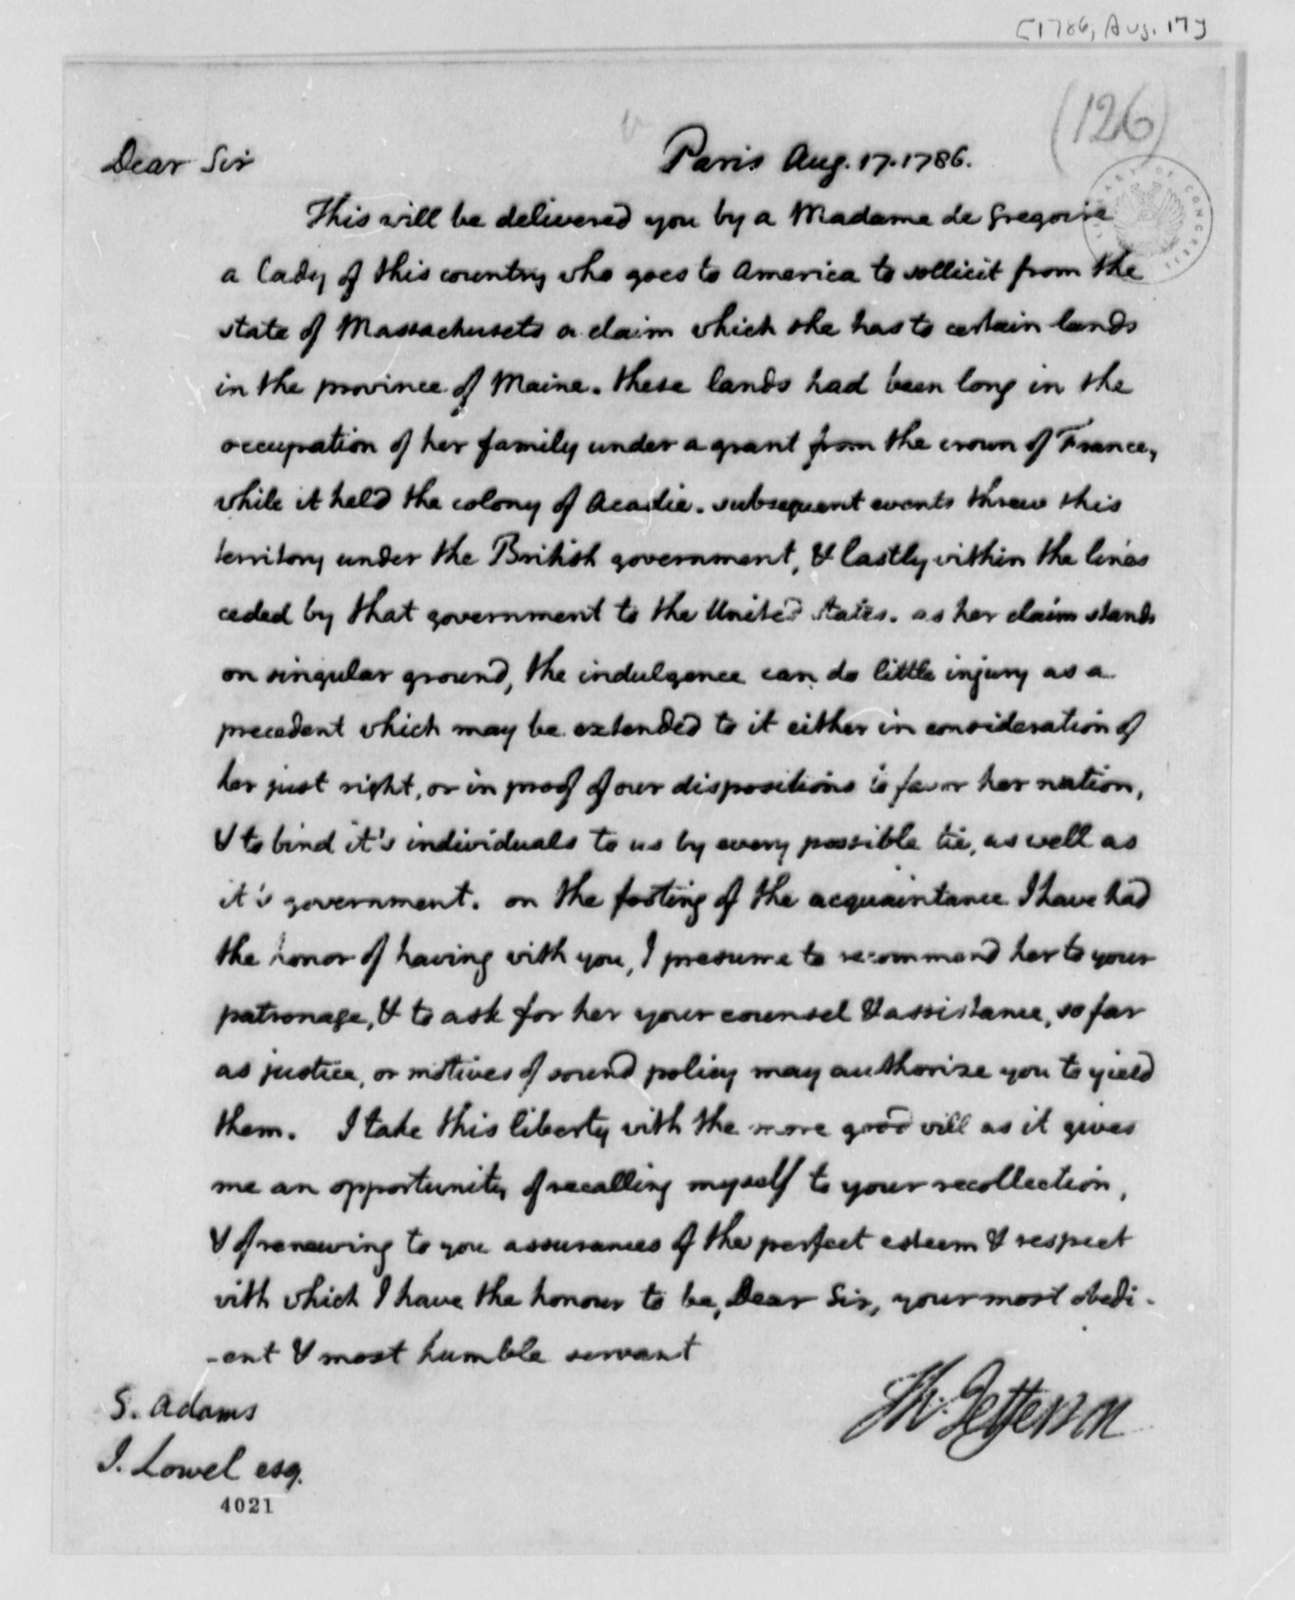 Thomas Jefferson to Samuel Adams and John Lowell, August 17, 1786, Property in Maine Claimed by Madame de Gregoire